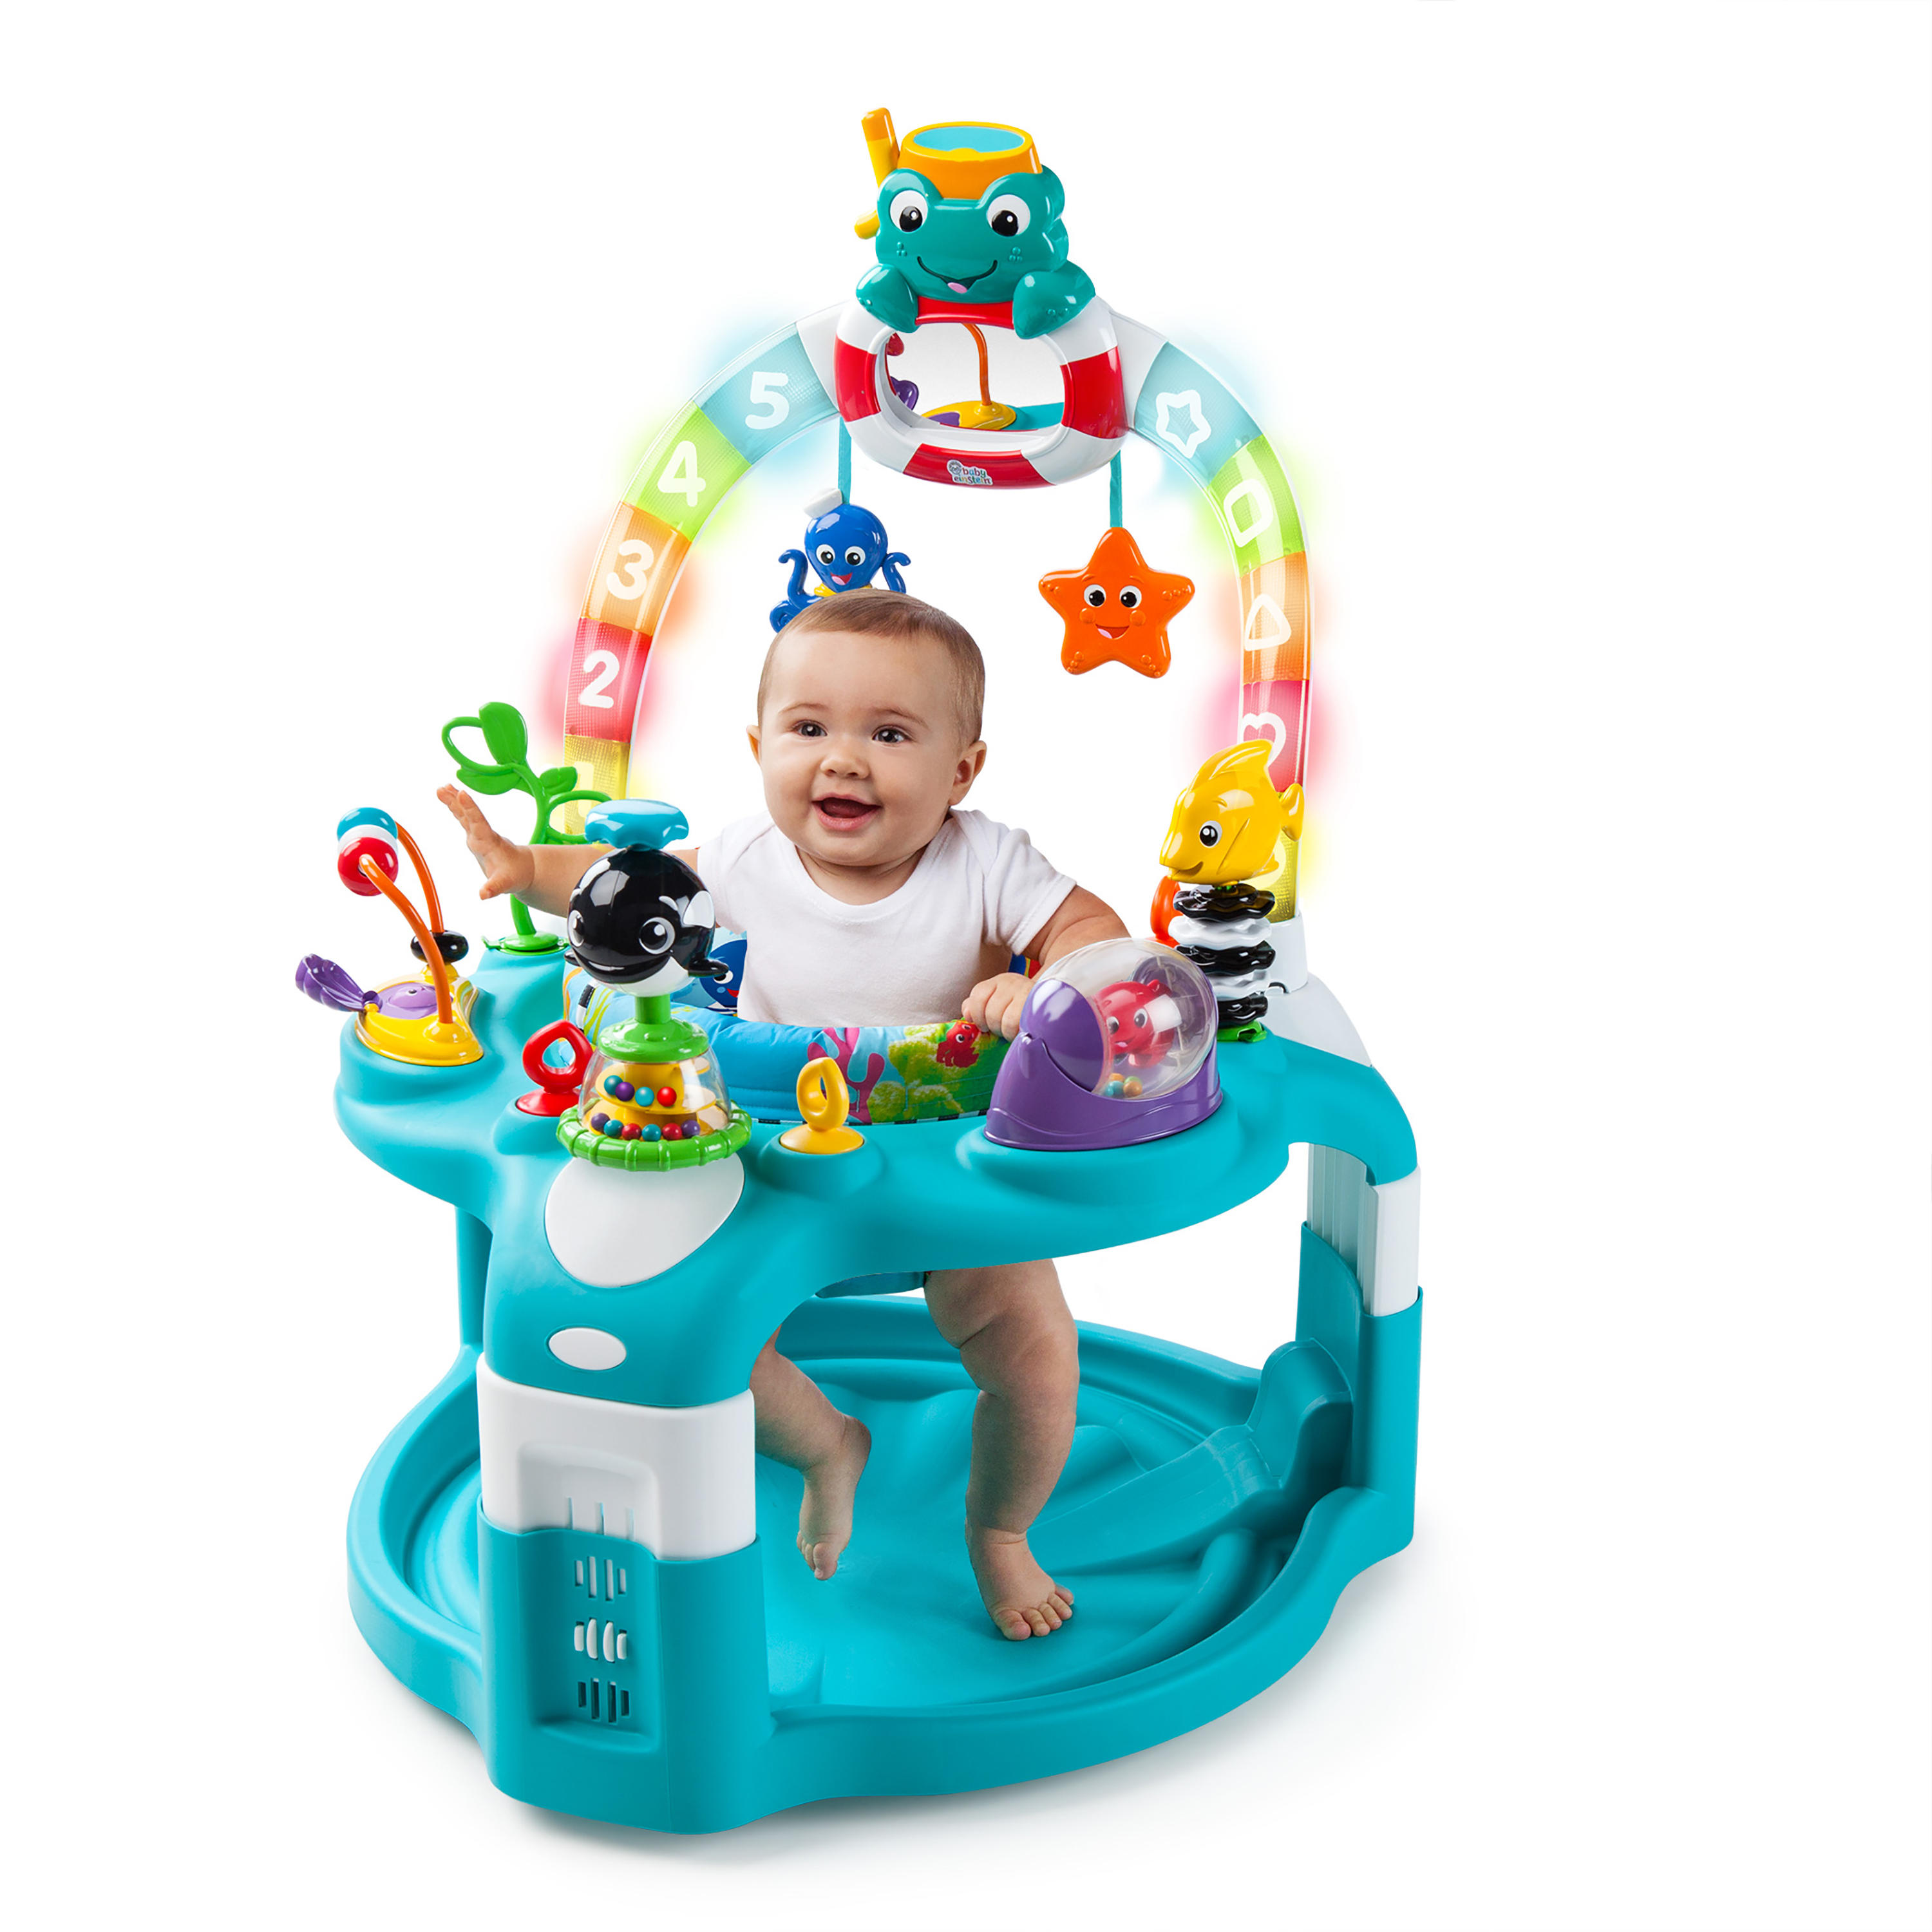 2-in-1 Lights & Sea Activity Gym & Saucer™